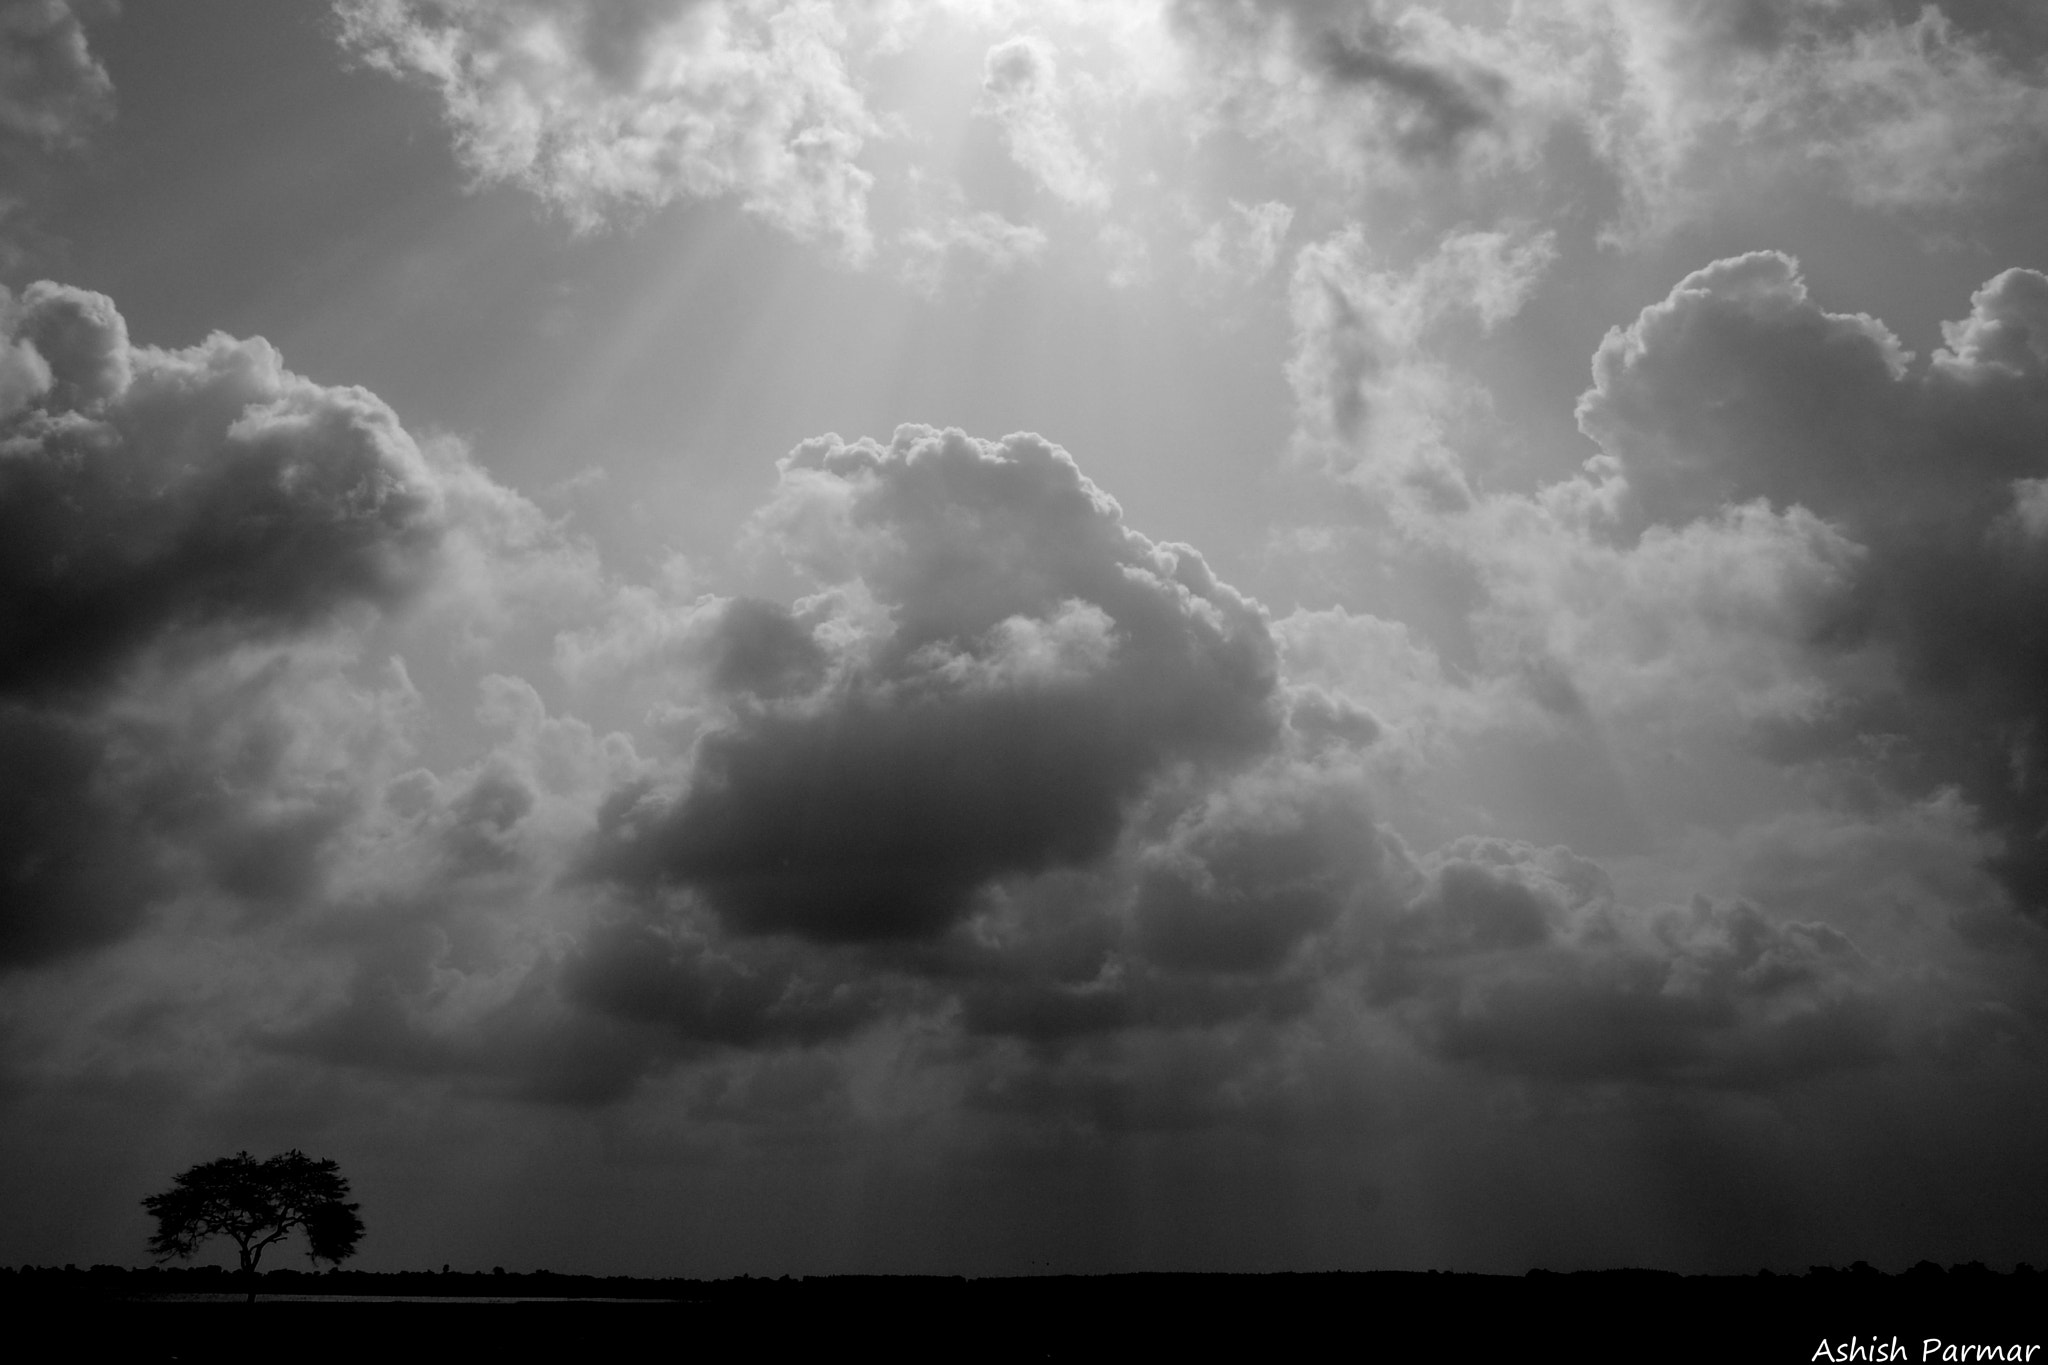 Photograph ~Rays from Heaven~ by Ashish Parmar on 500px